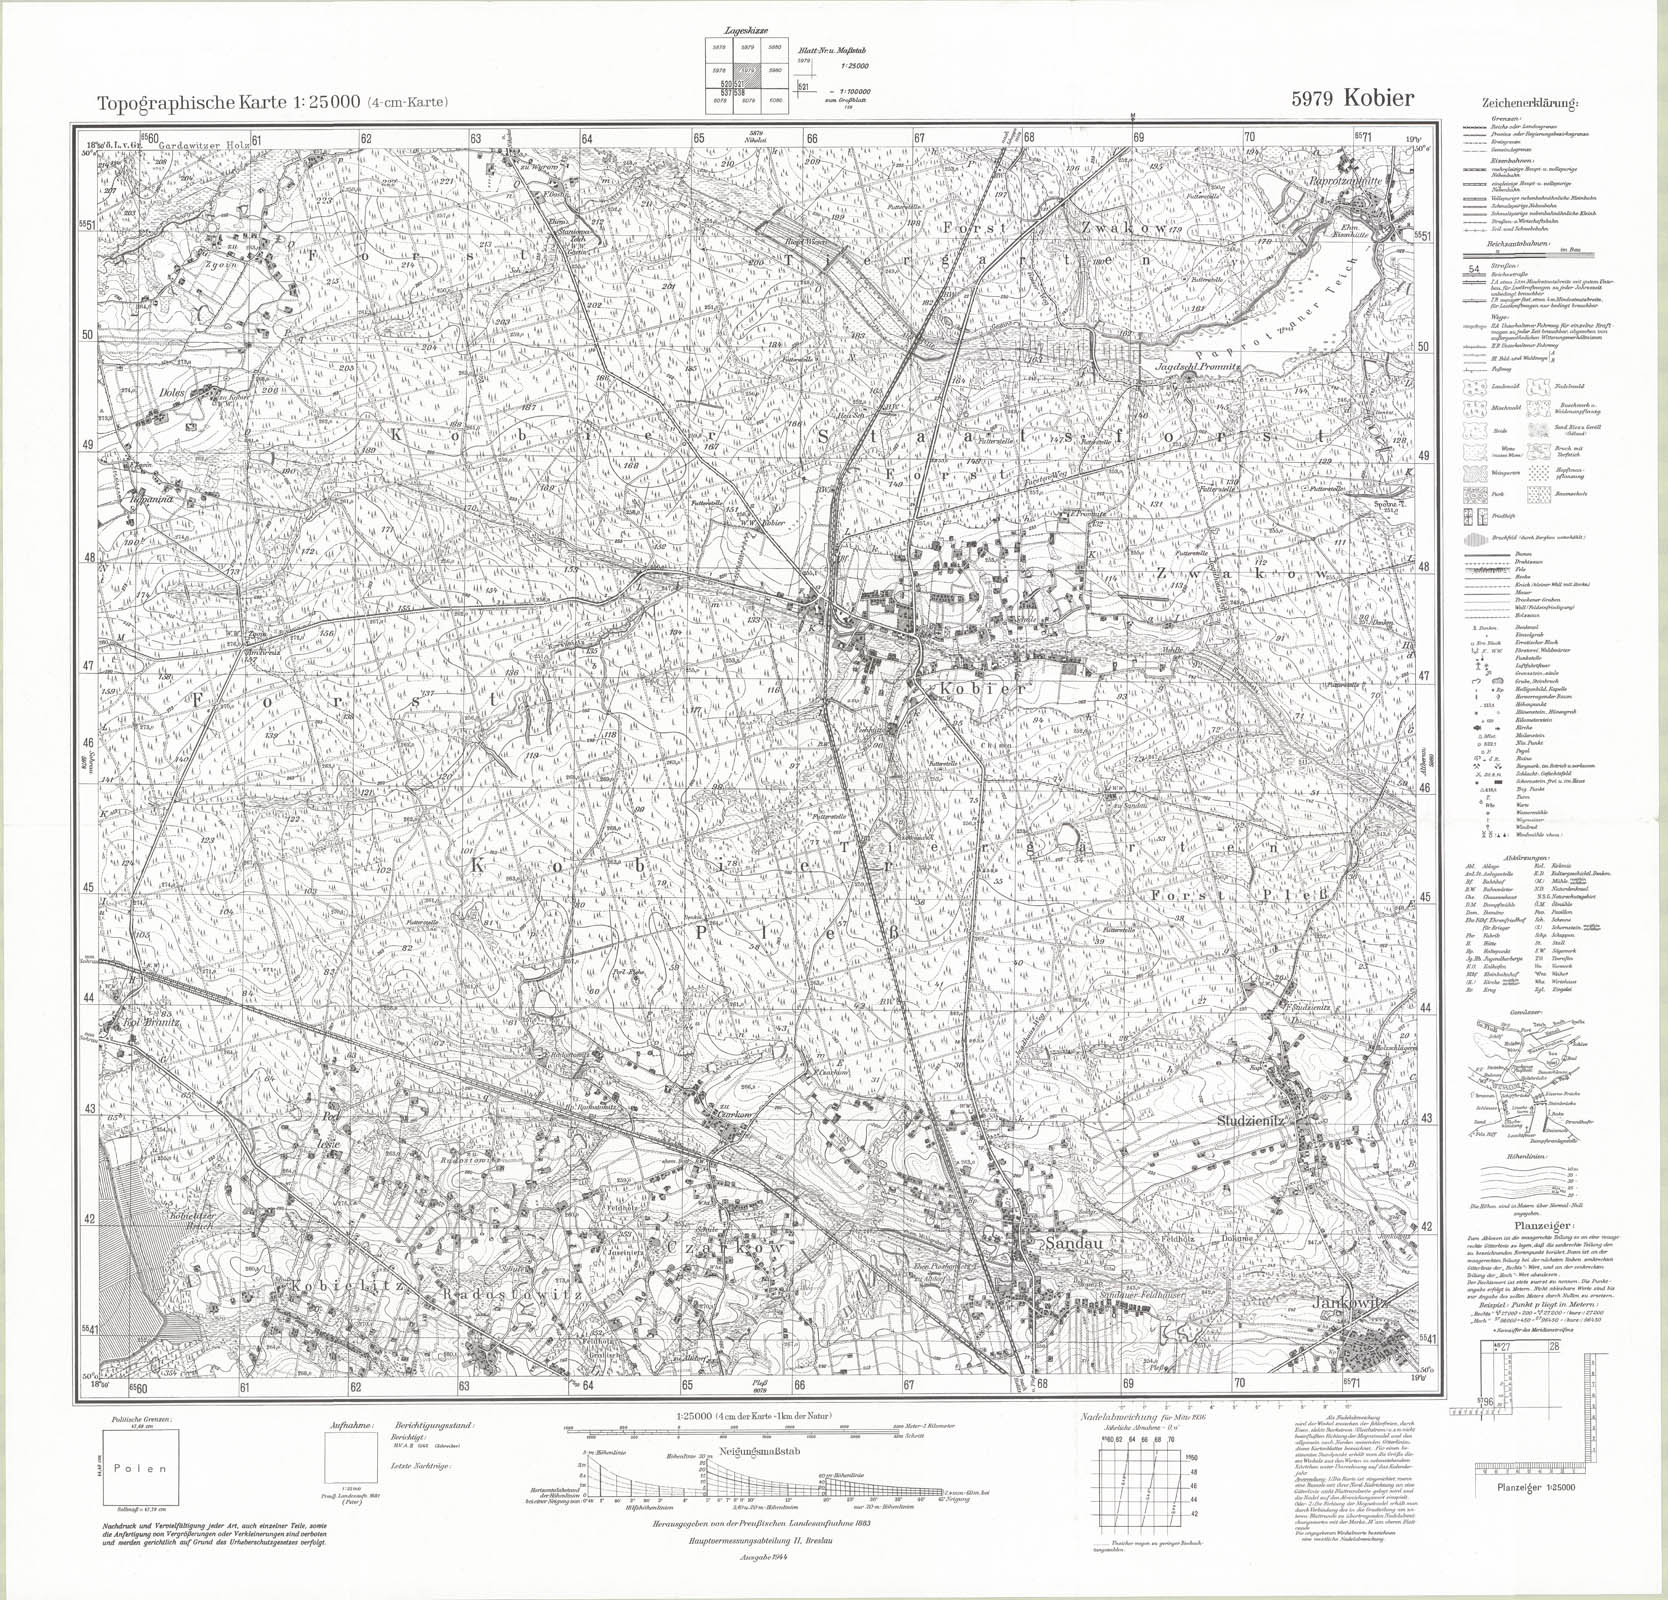 Kobior ordinance survey map 2 1944